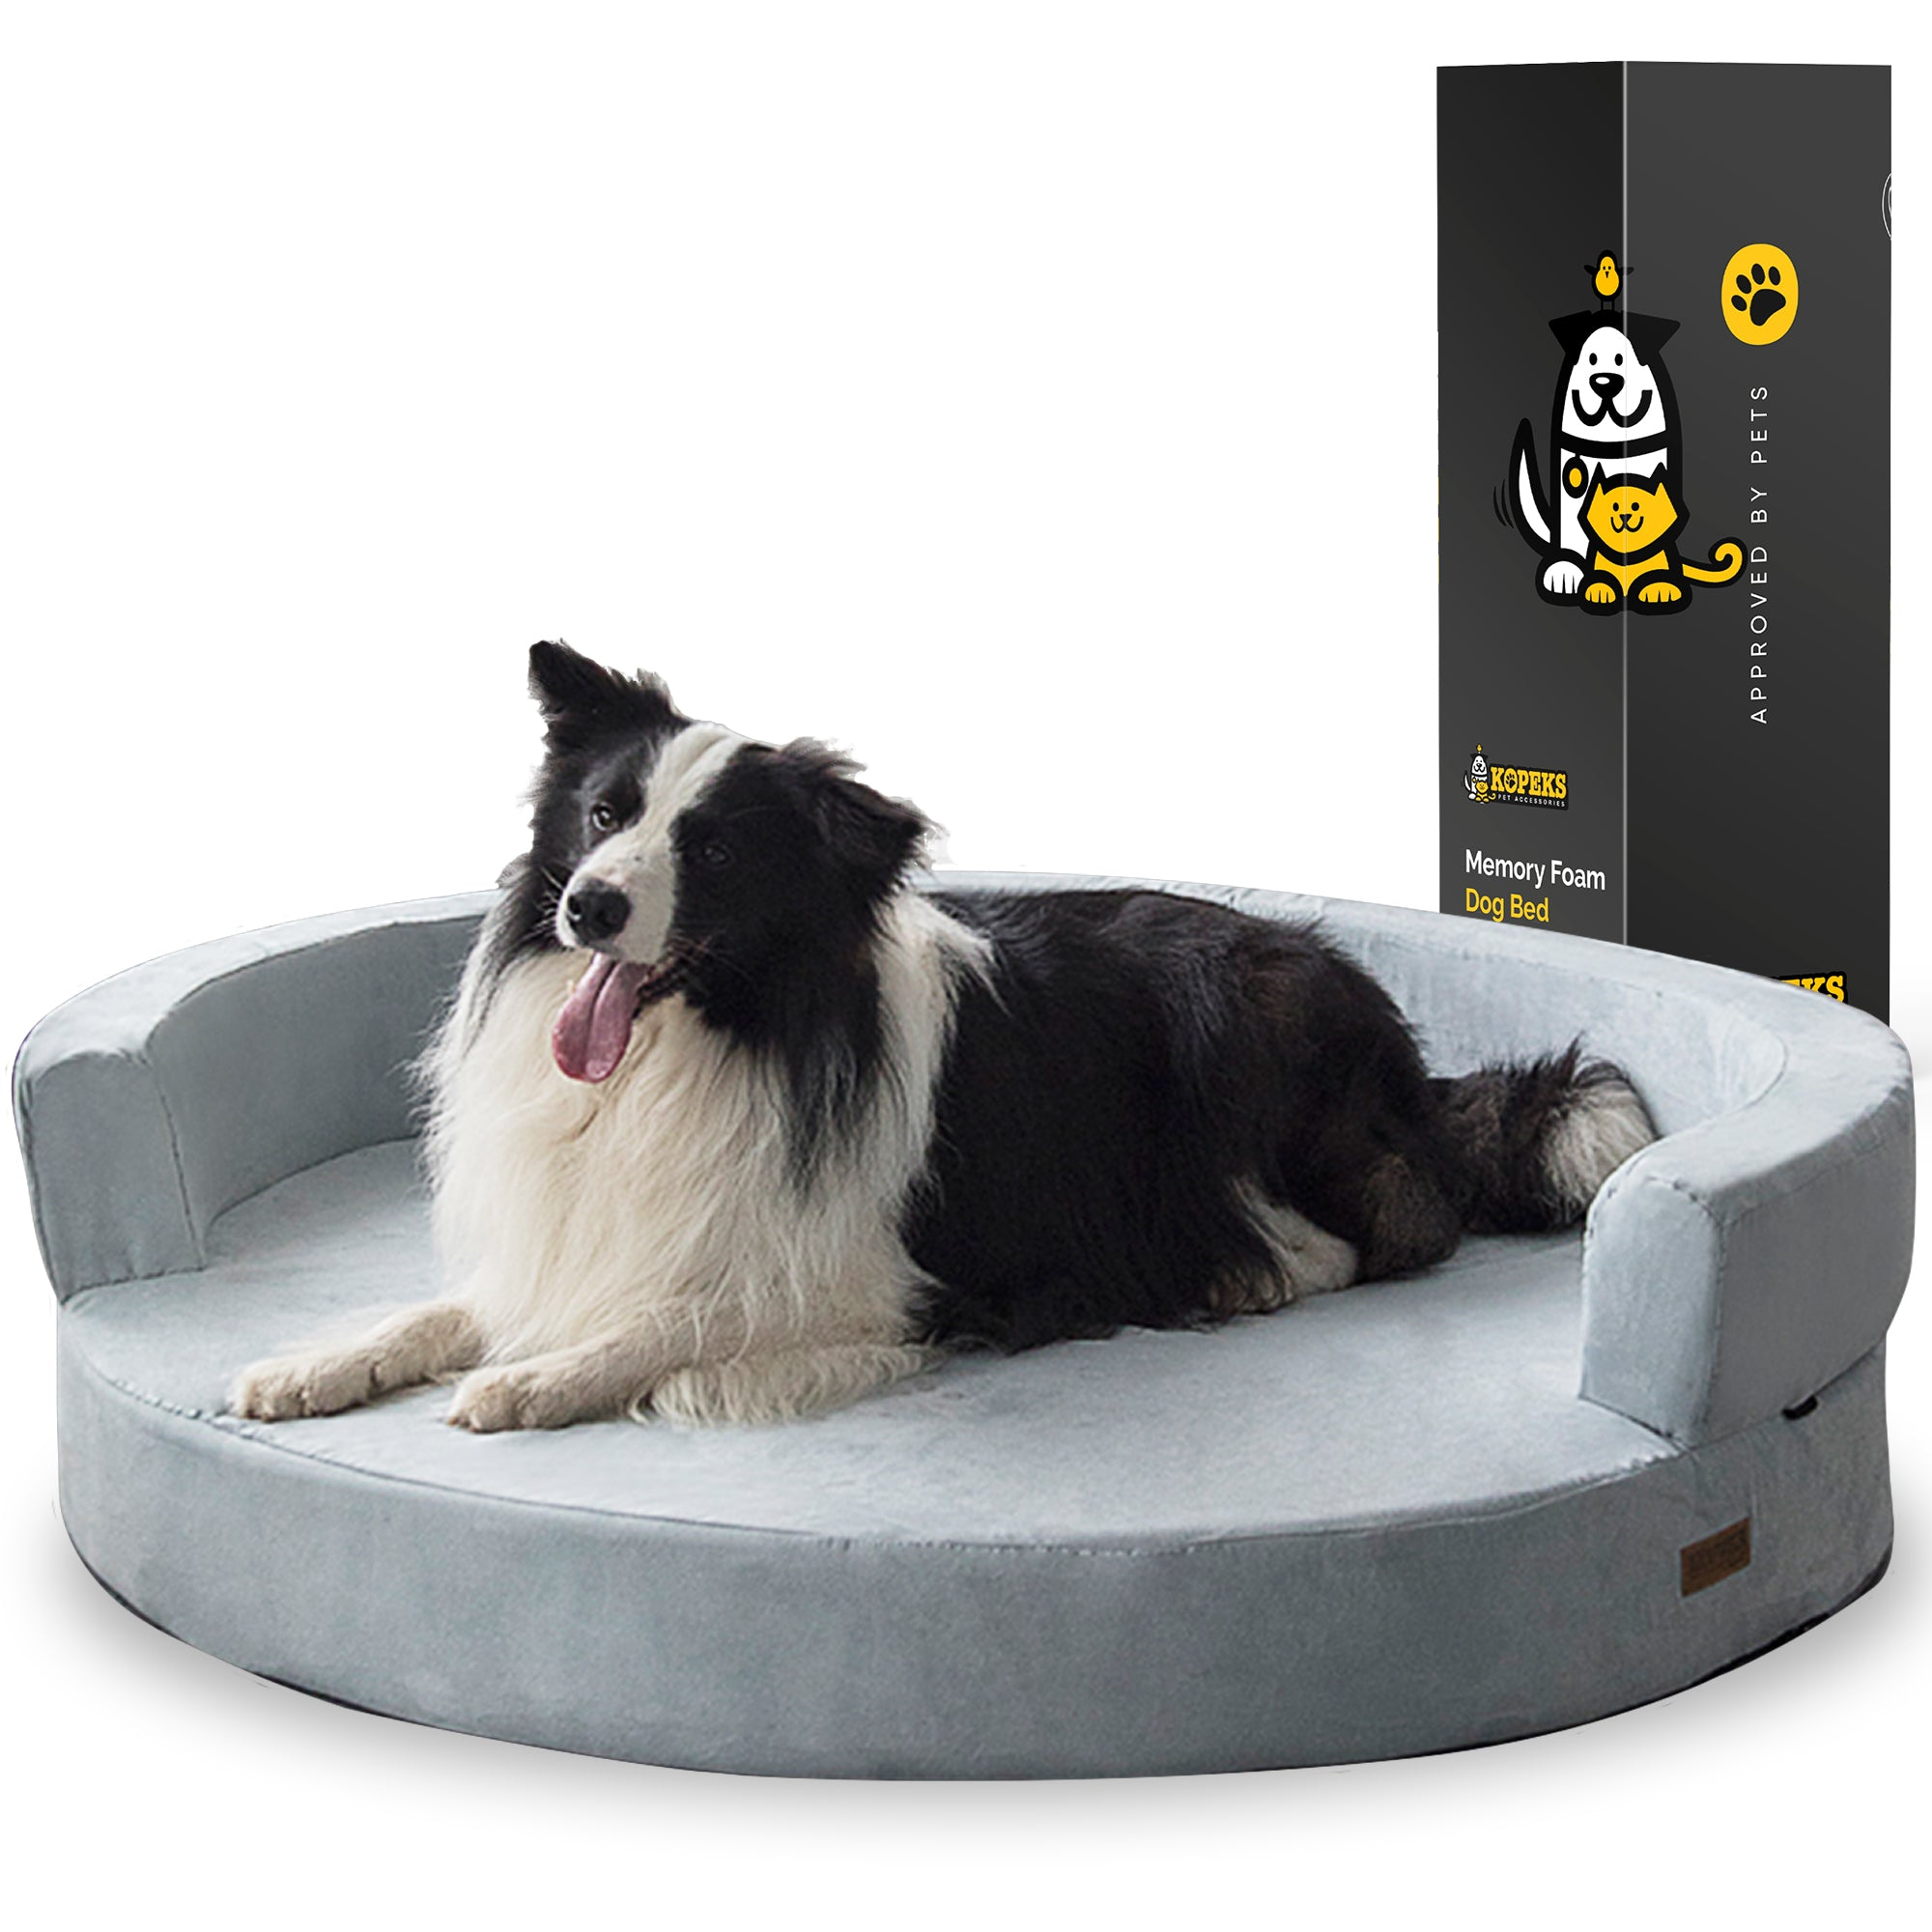 Dog Bed Round Deluxe Orthopedic Memory Foam Sofa Lounge XL - Grey